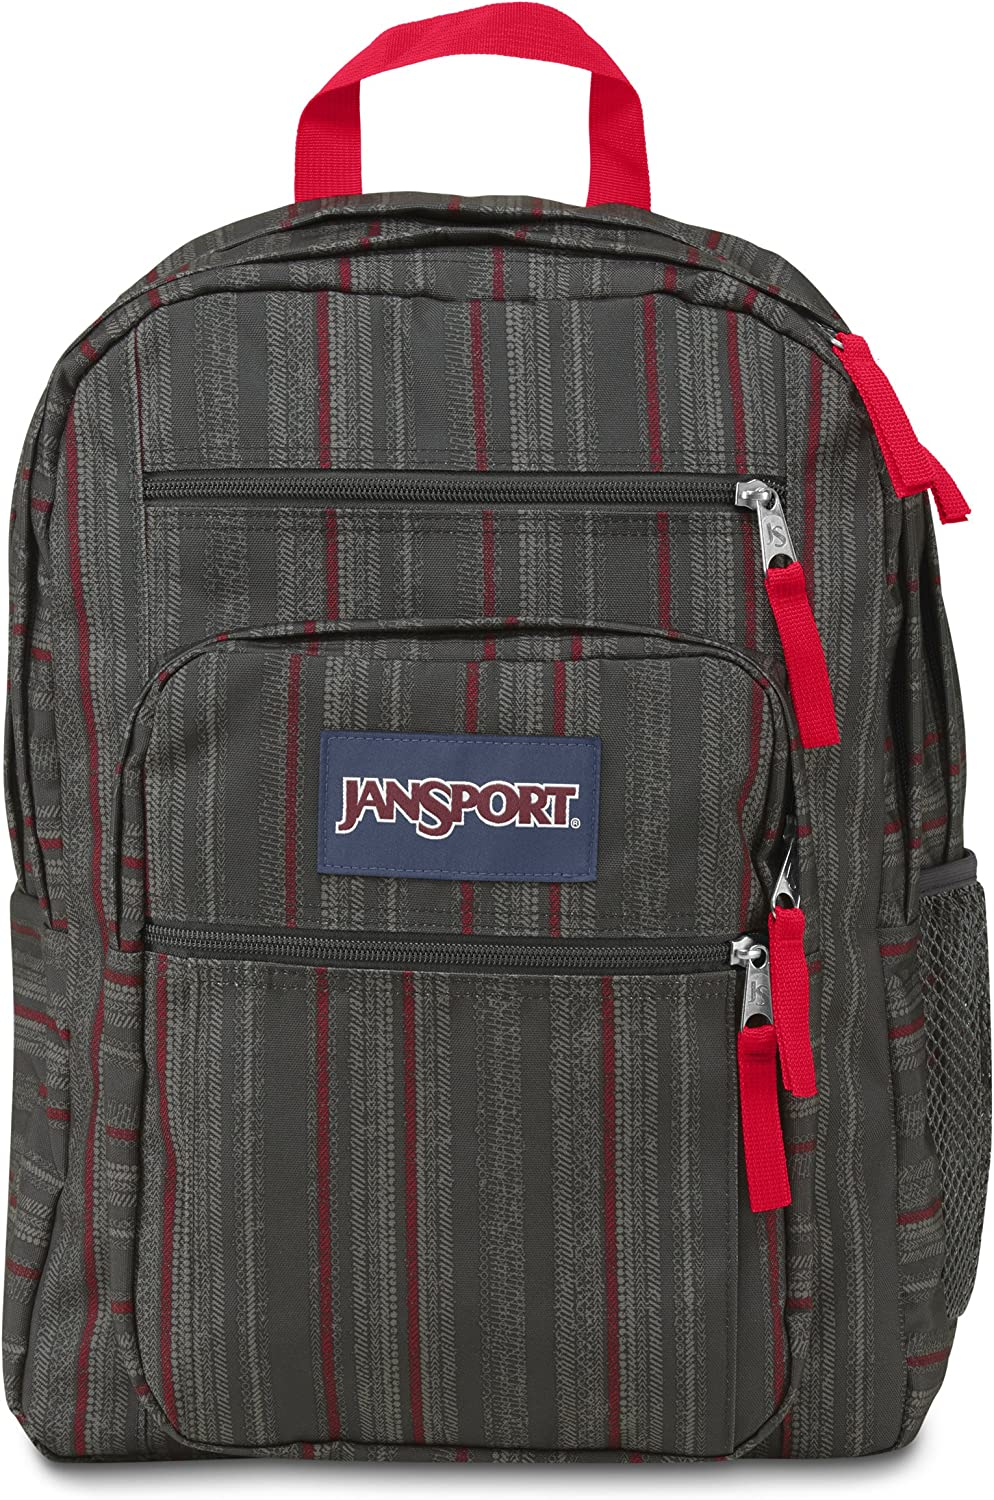 JanSport Big Student Classics Series Backpack - RED TAPE GRUNGE STRIPE